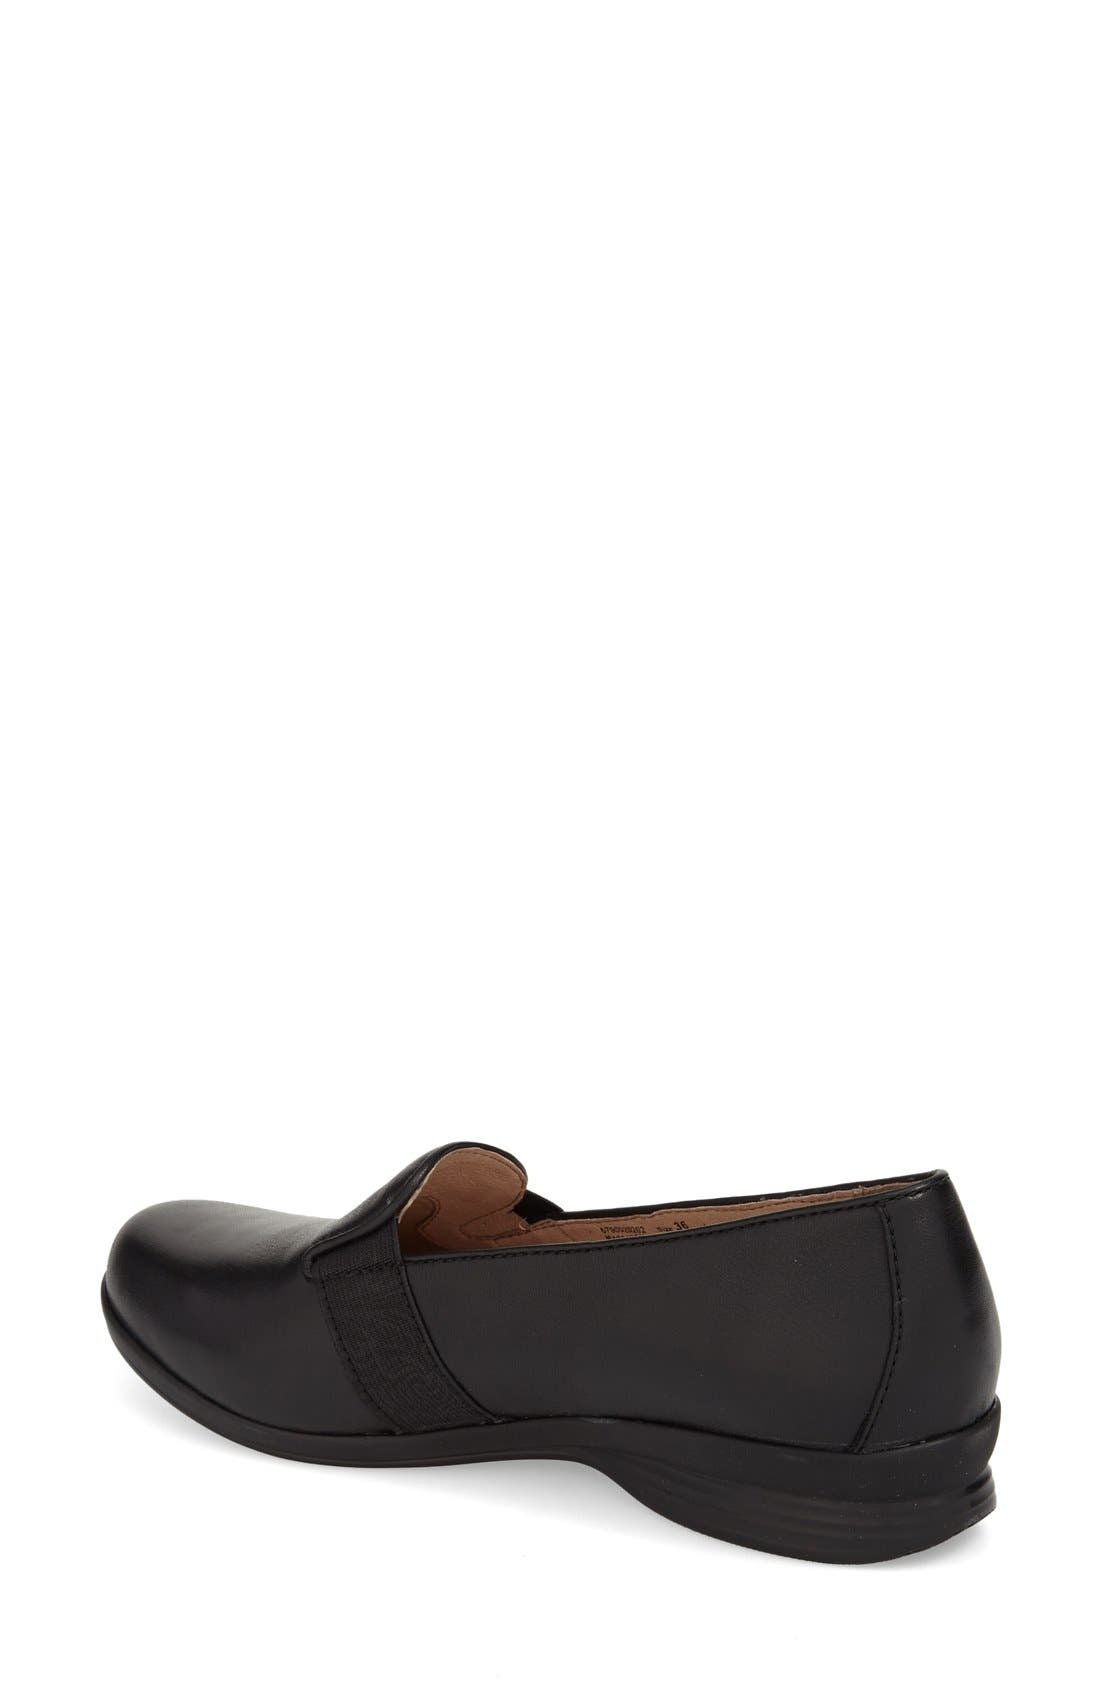 'Addy' Loafer,                             Alternate thumbnail 2, color,                             BLACK NAPPA LEATHER